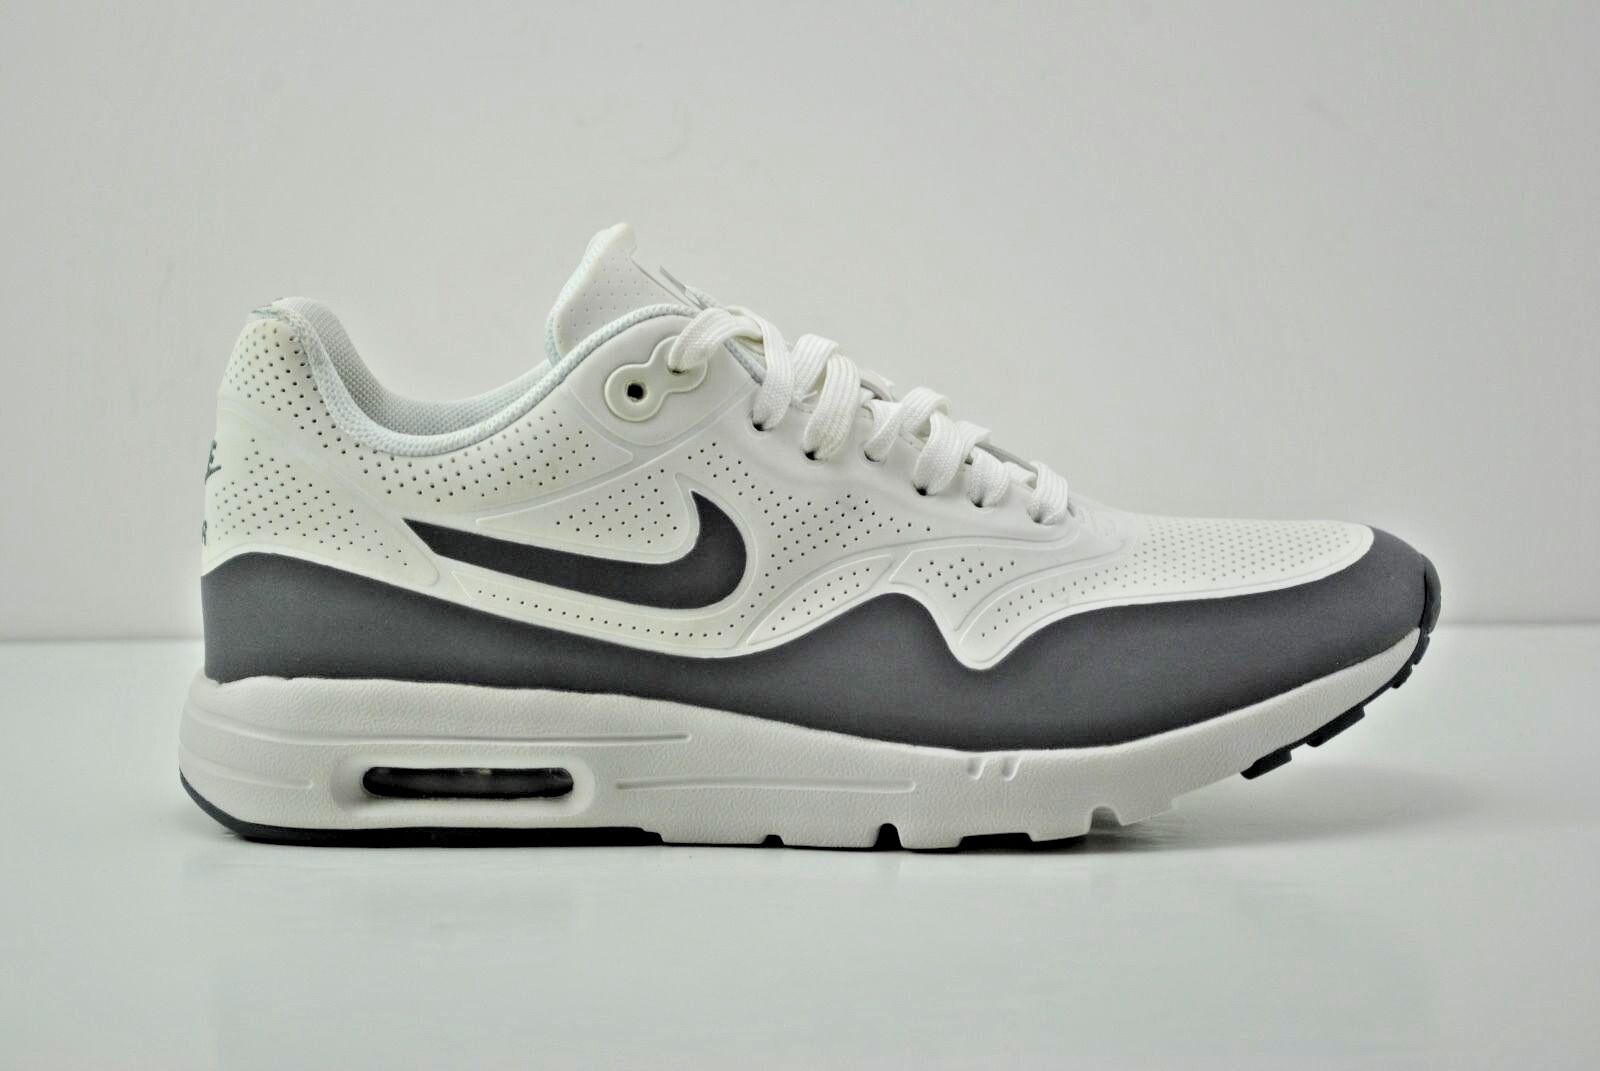 Womens Nike Air Max 1 Ultra Moire Running Shoes Size 7.5 White Grey 704995 101